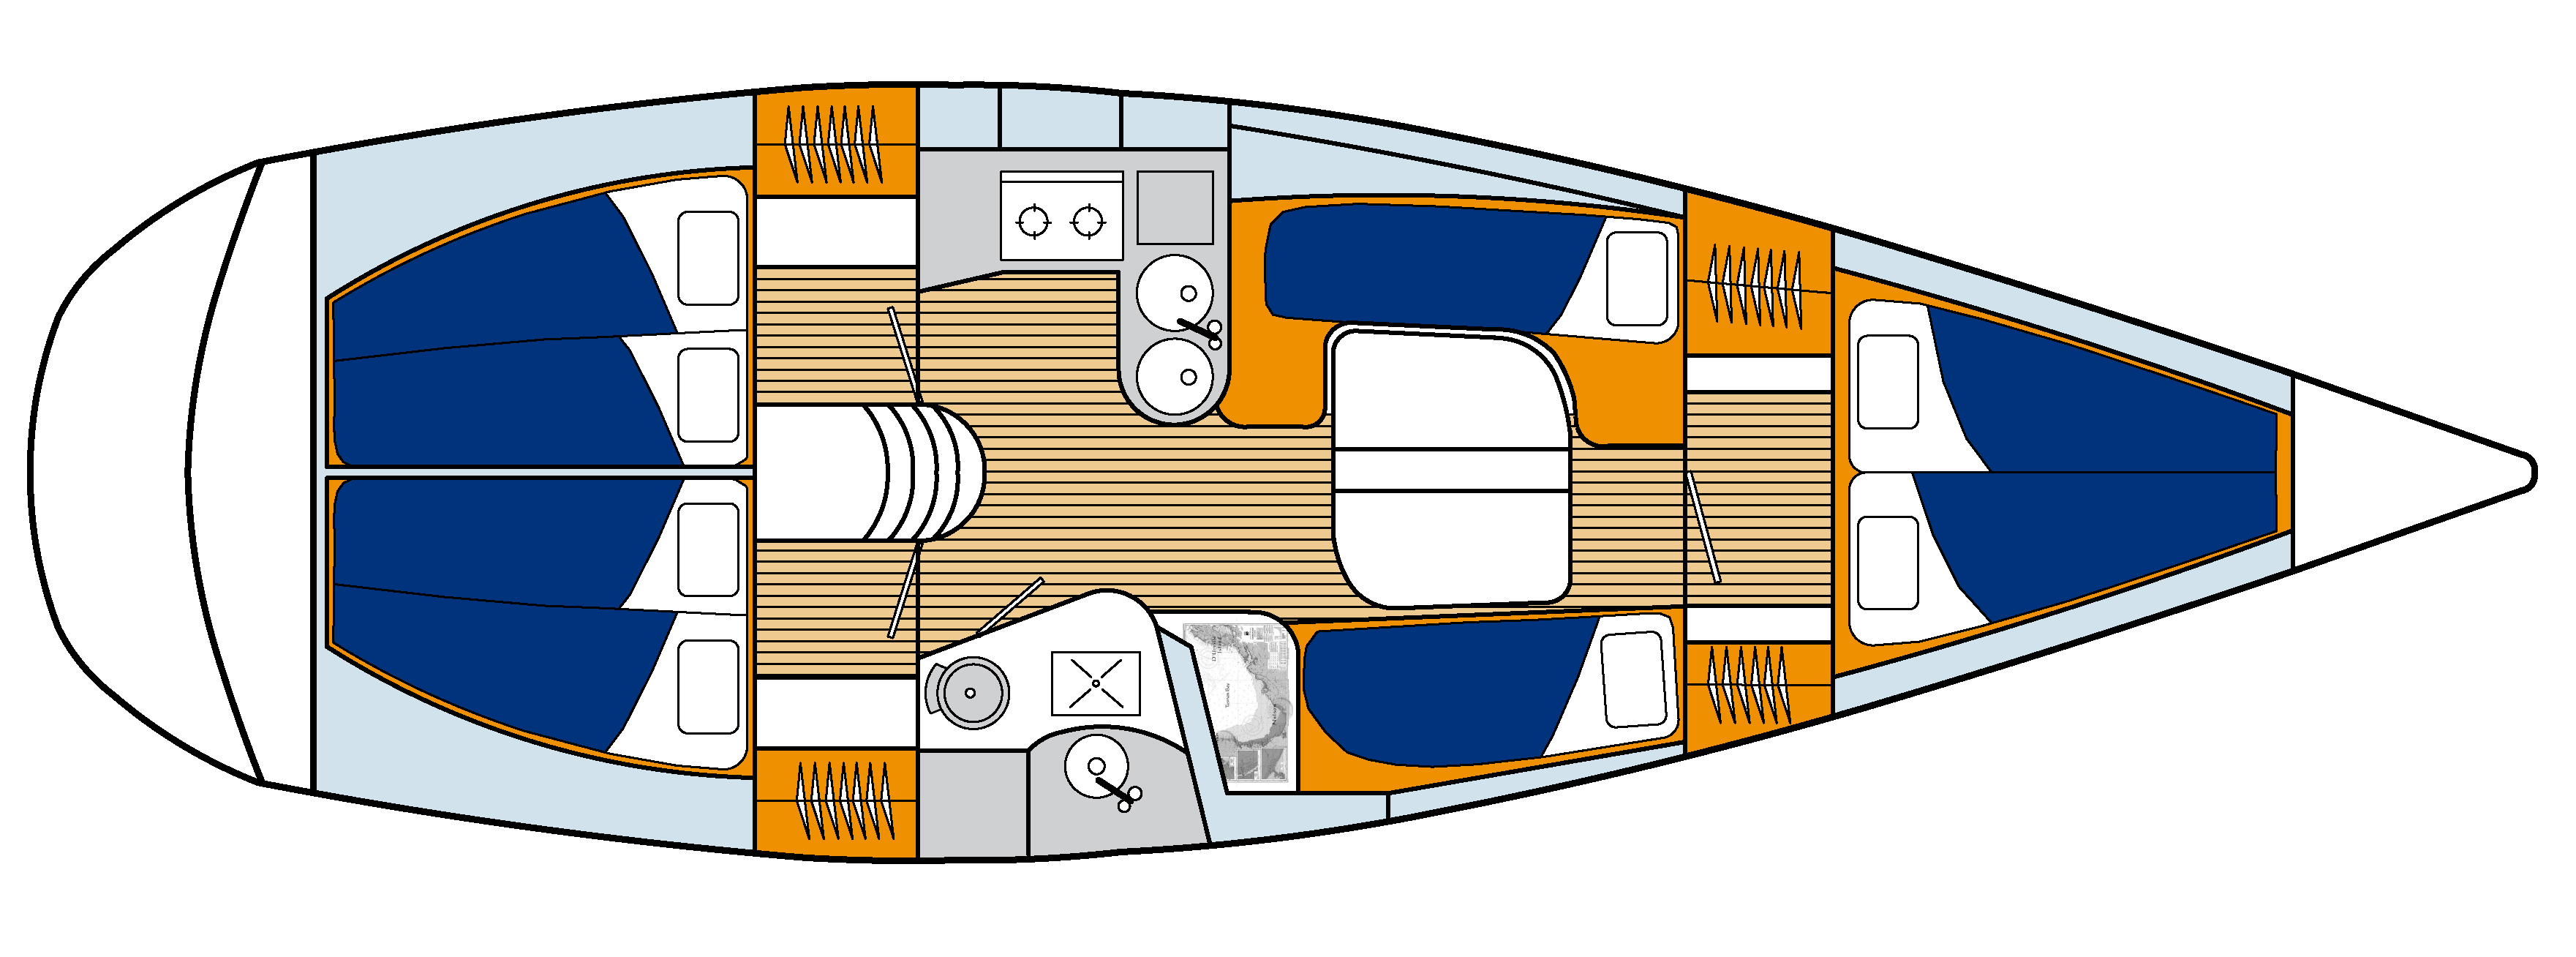 Breeze Yacht Internal Layout